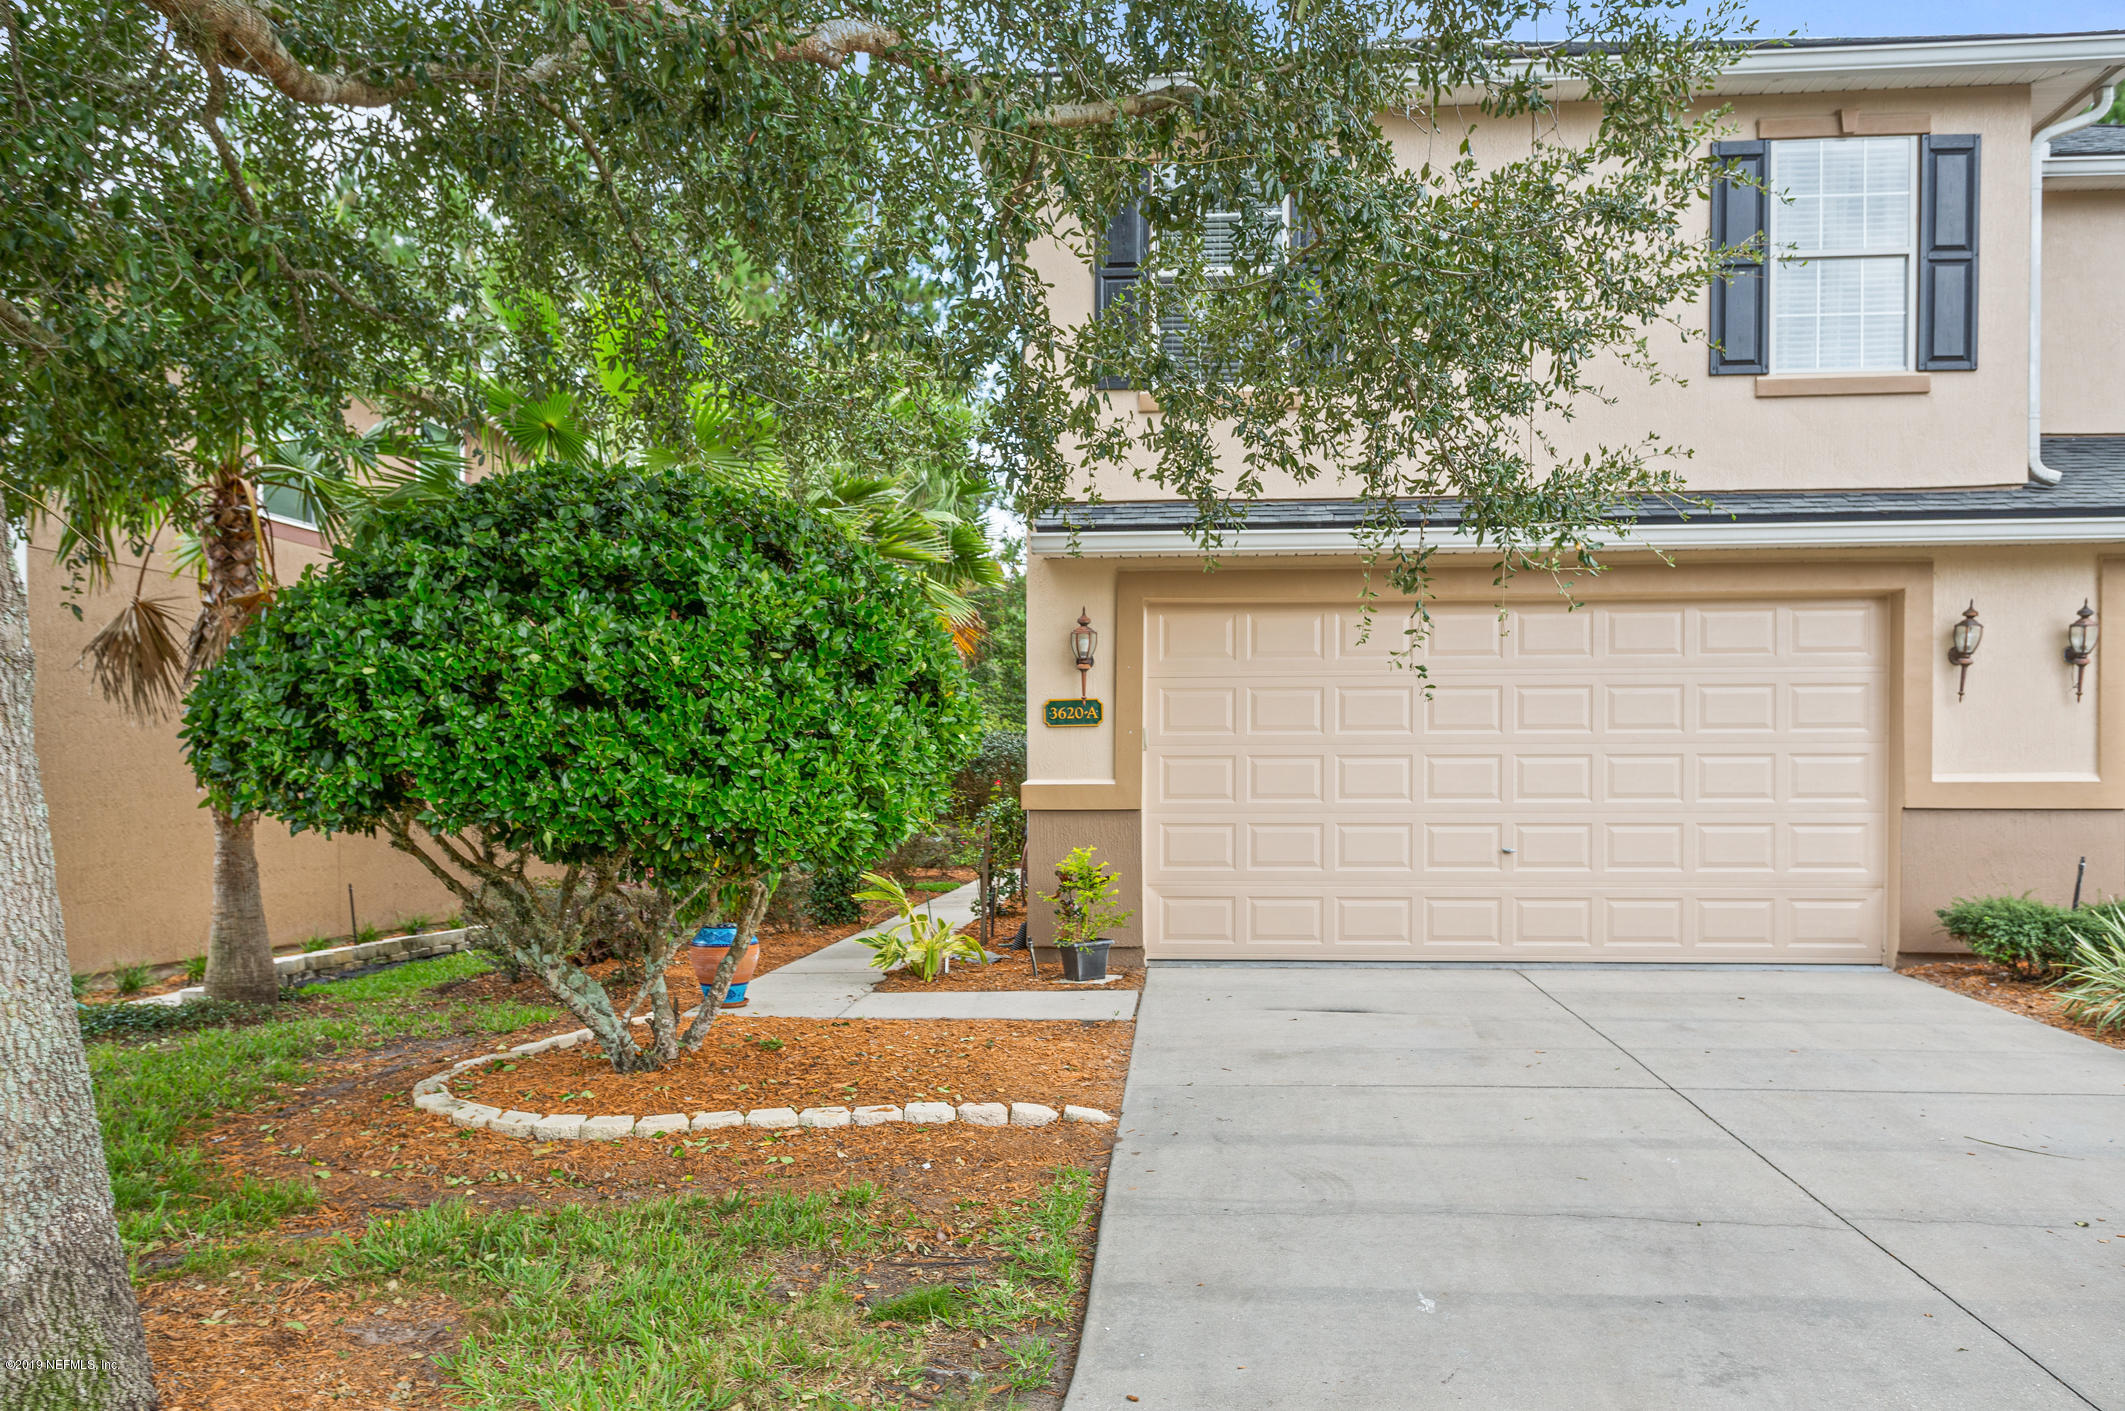 3620 CRESWICK, ORANGE PARK, FLORIDA 32065, 3 Bedrooms Bedrooms, ,2 BathroomsBathrooms,Residential - townhome,For sale,CRESWICK,1021009